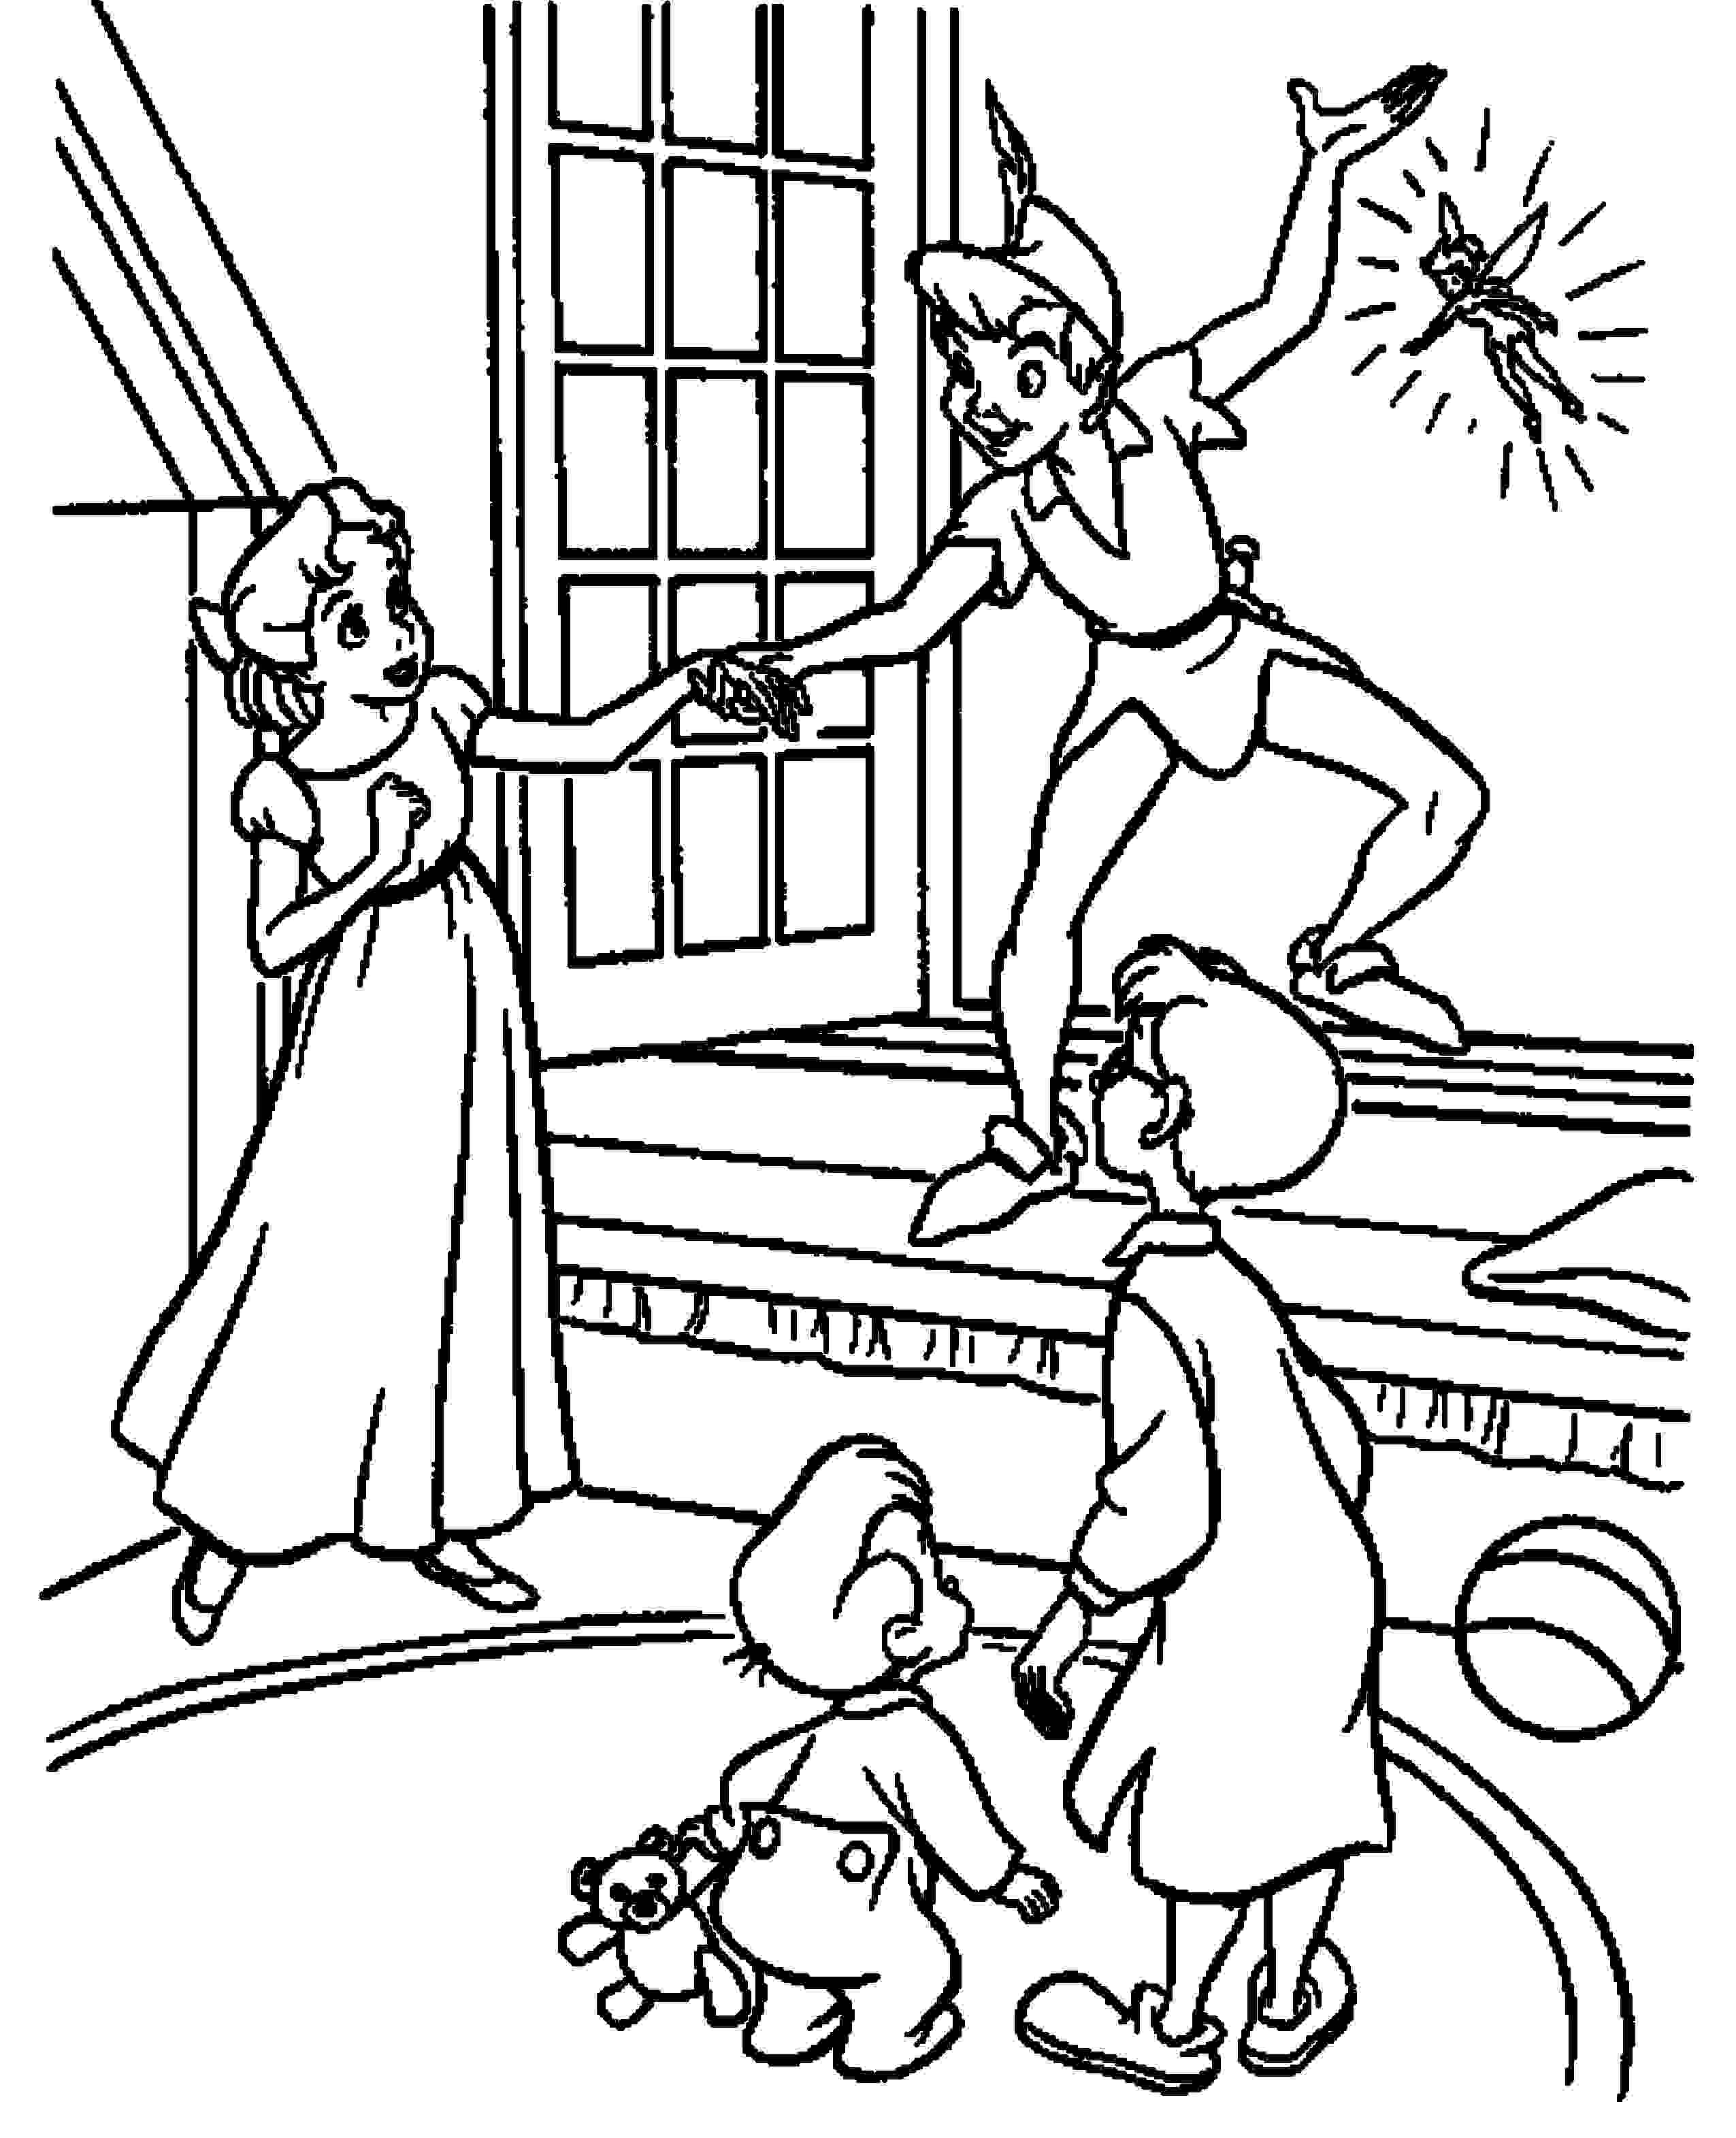 Print & Download - Fun Peter Pan Coloring Pages Downloaded for Free